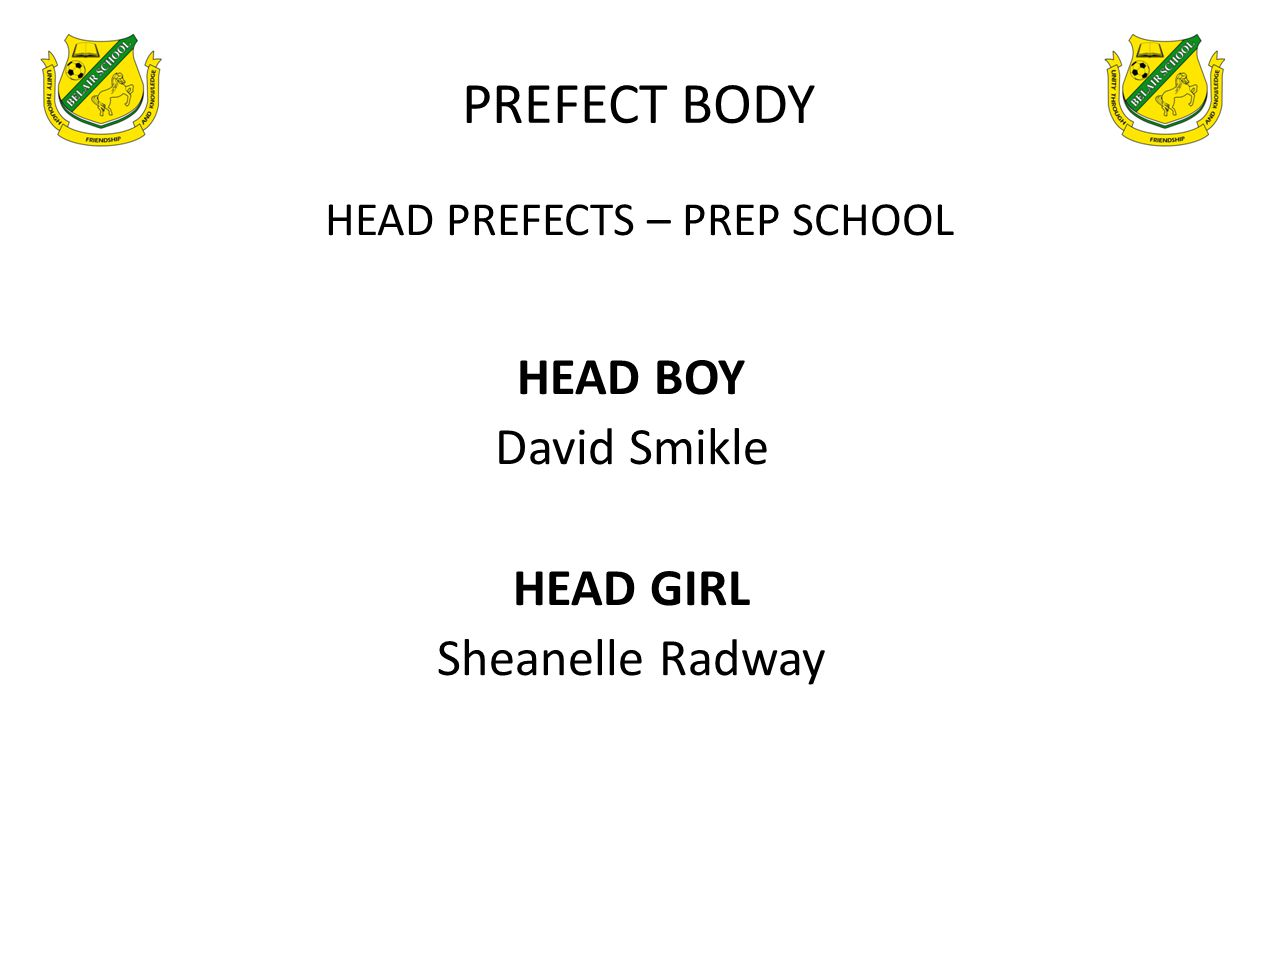 HEAD PREFECTS – PREP SCHOOL